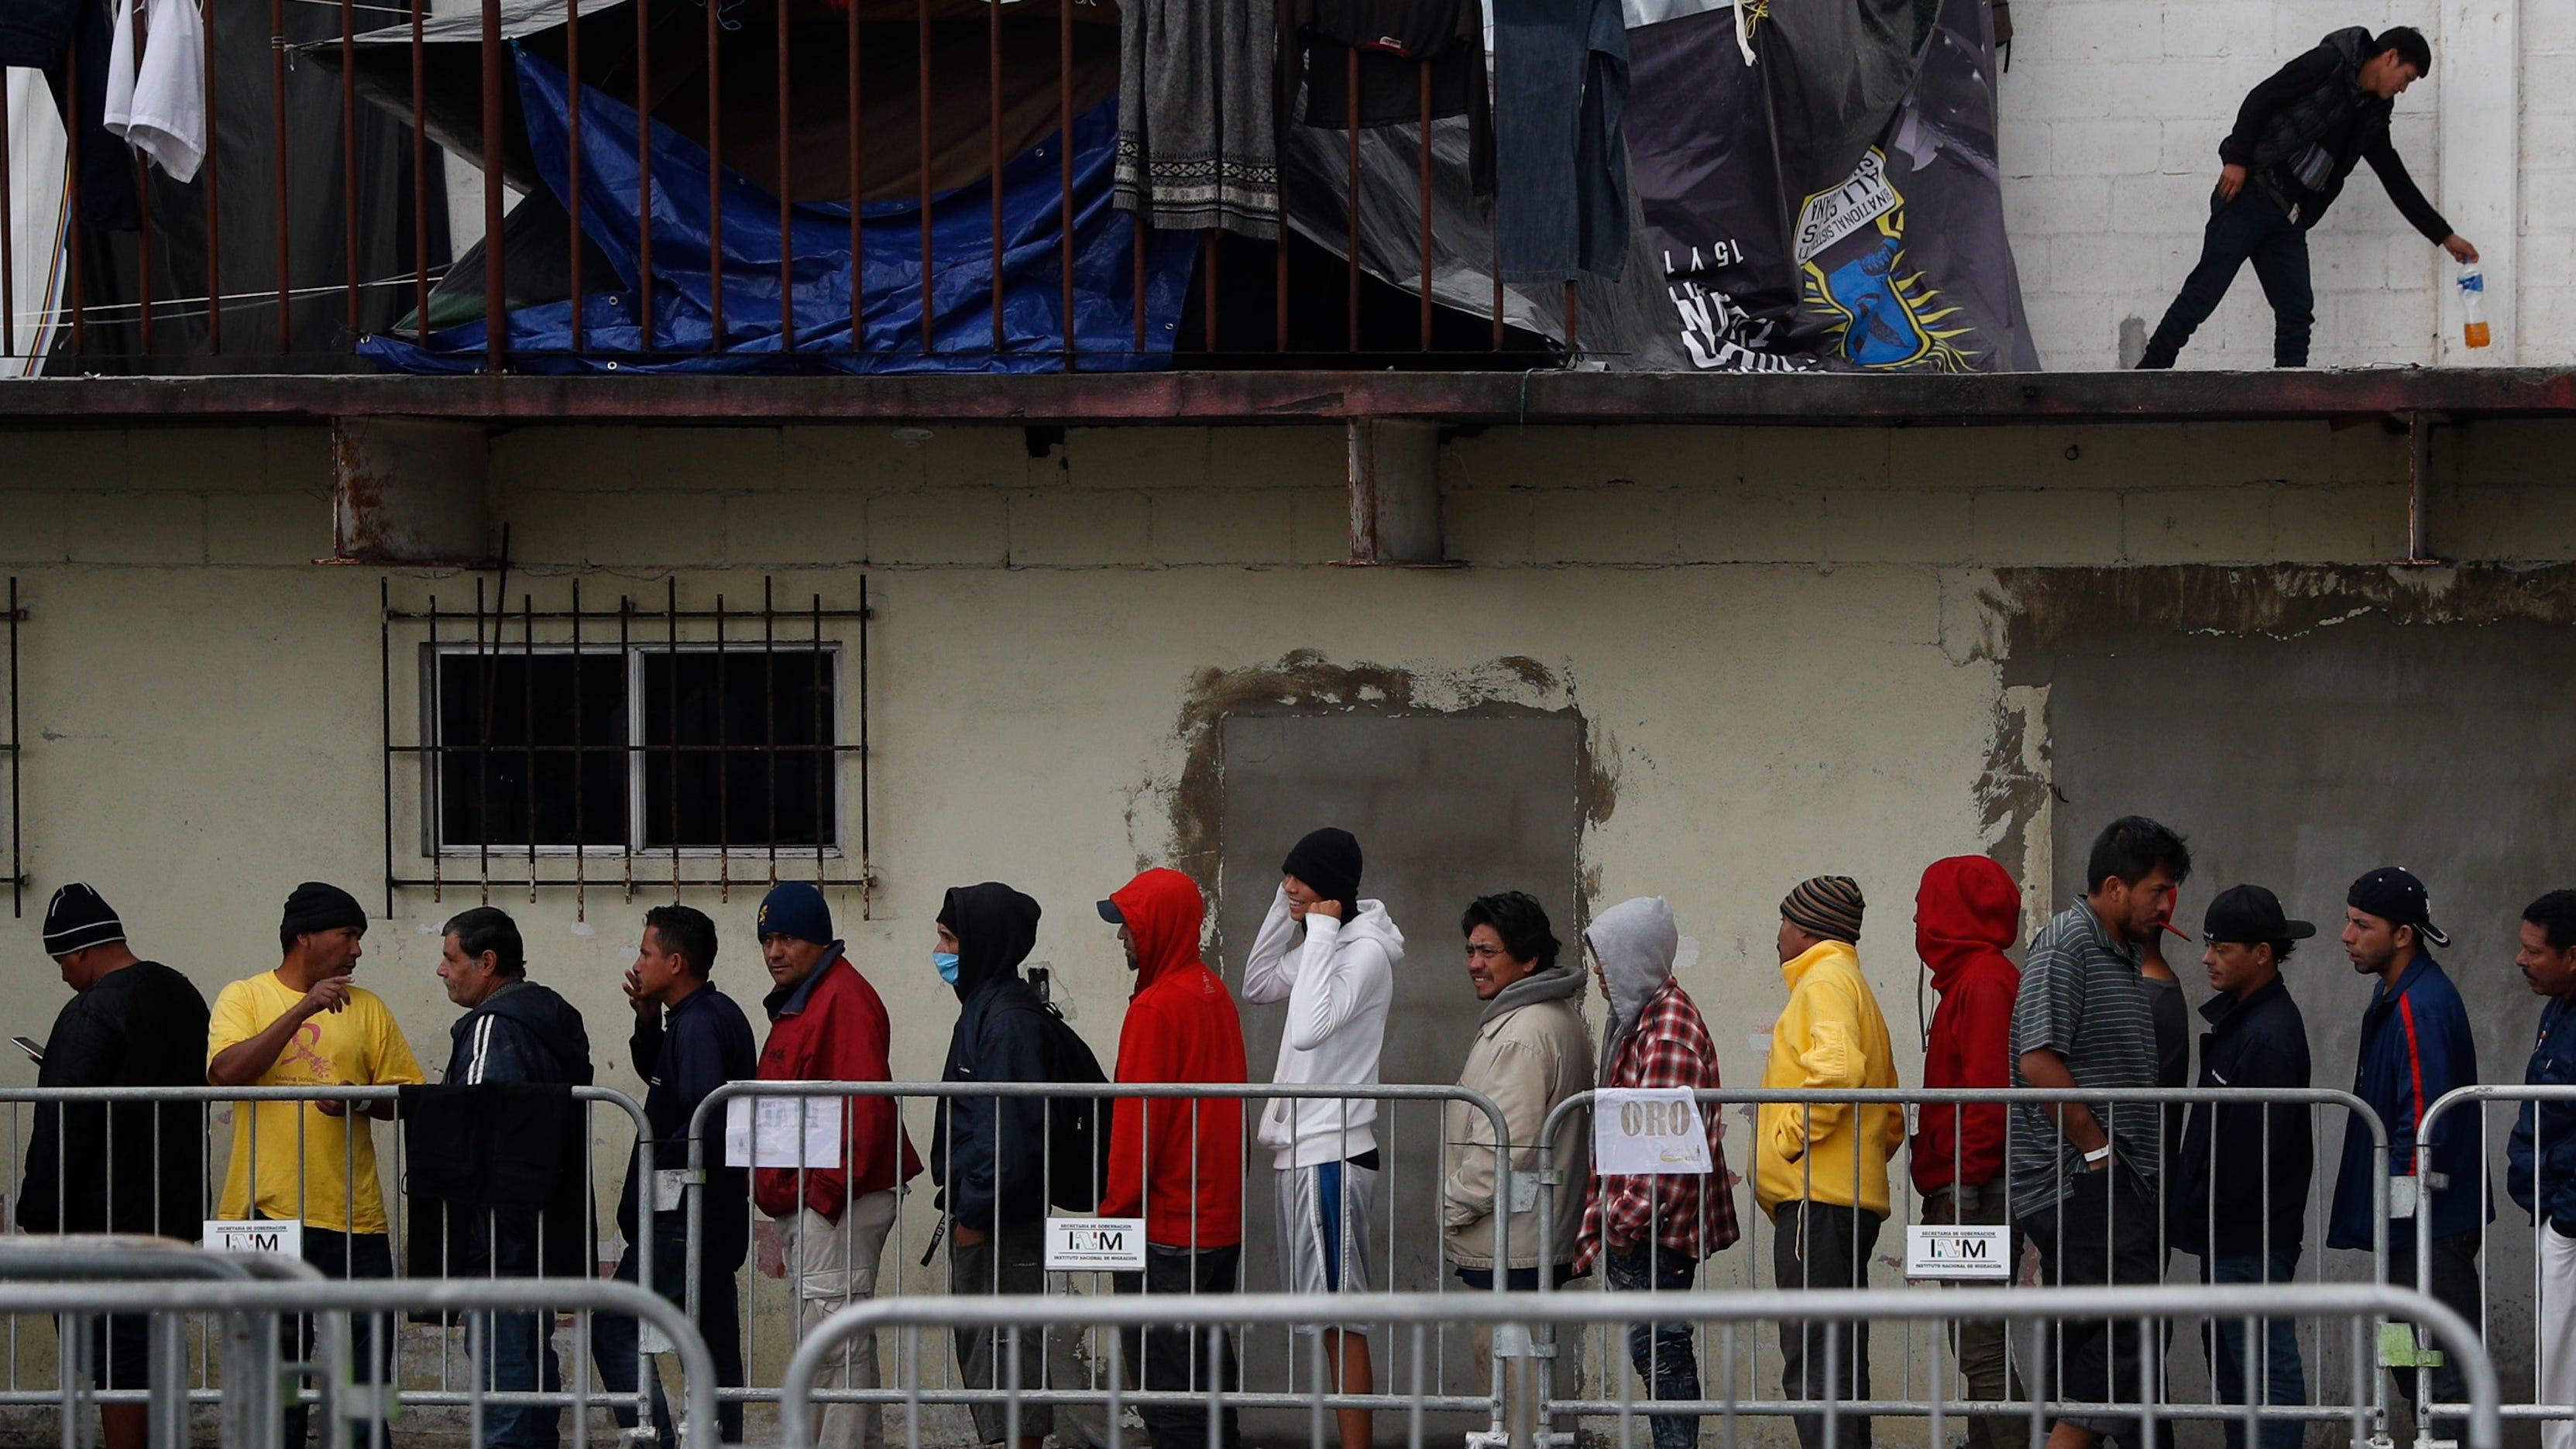 Migrants wait in line to receive free breakfast inside the Barretal migrant shelter, a former concert venue, in Tijuana, Mexico, on Dec. 6, 2018.